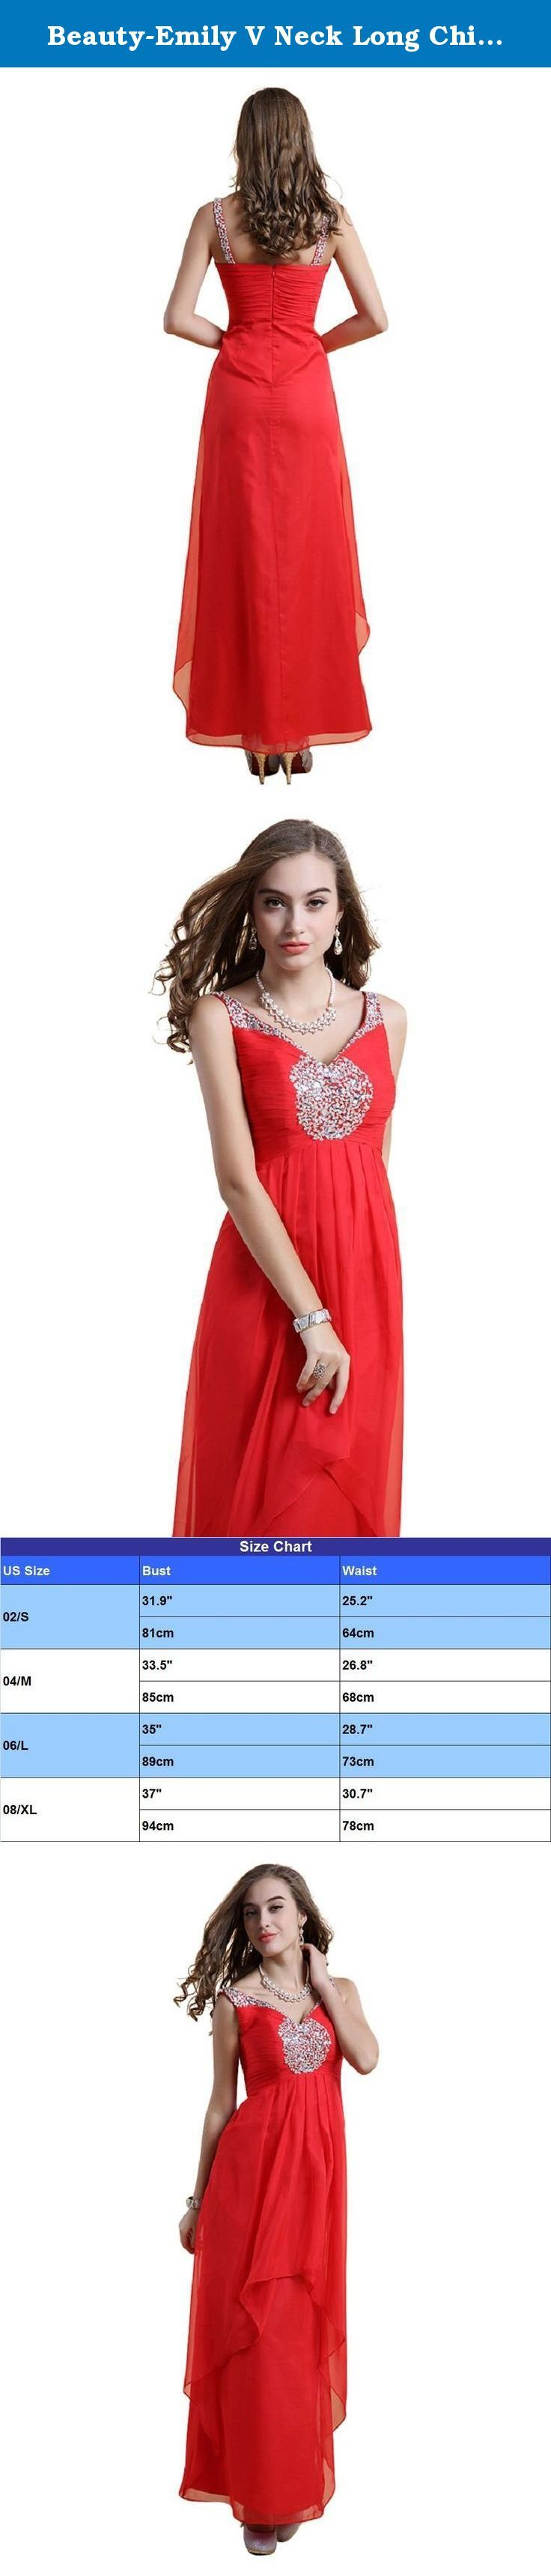 Beauty-Emily V Neck Long Chiffon Evening Dresses Bridesmaid Party Prom Gowns Color Red,Size L. We are specialized in dress. Including evening,cocktail,party,summer and other dress.The item description is as follow: High collar,cap sleeve degisn.Embroidery and sequins decorated.Great lace fabric.Slim,bodycon style.Fit for cocktail,evening,party ball occasion. All dresses are made manually by top sailor. Any unsactisfaction please contact us, 30 days return is available. Size Chart is…